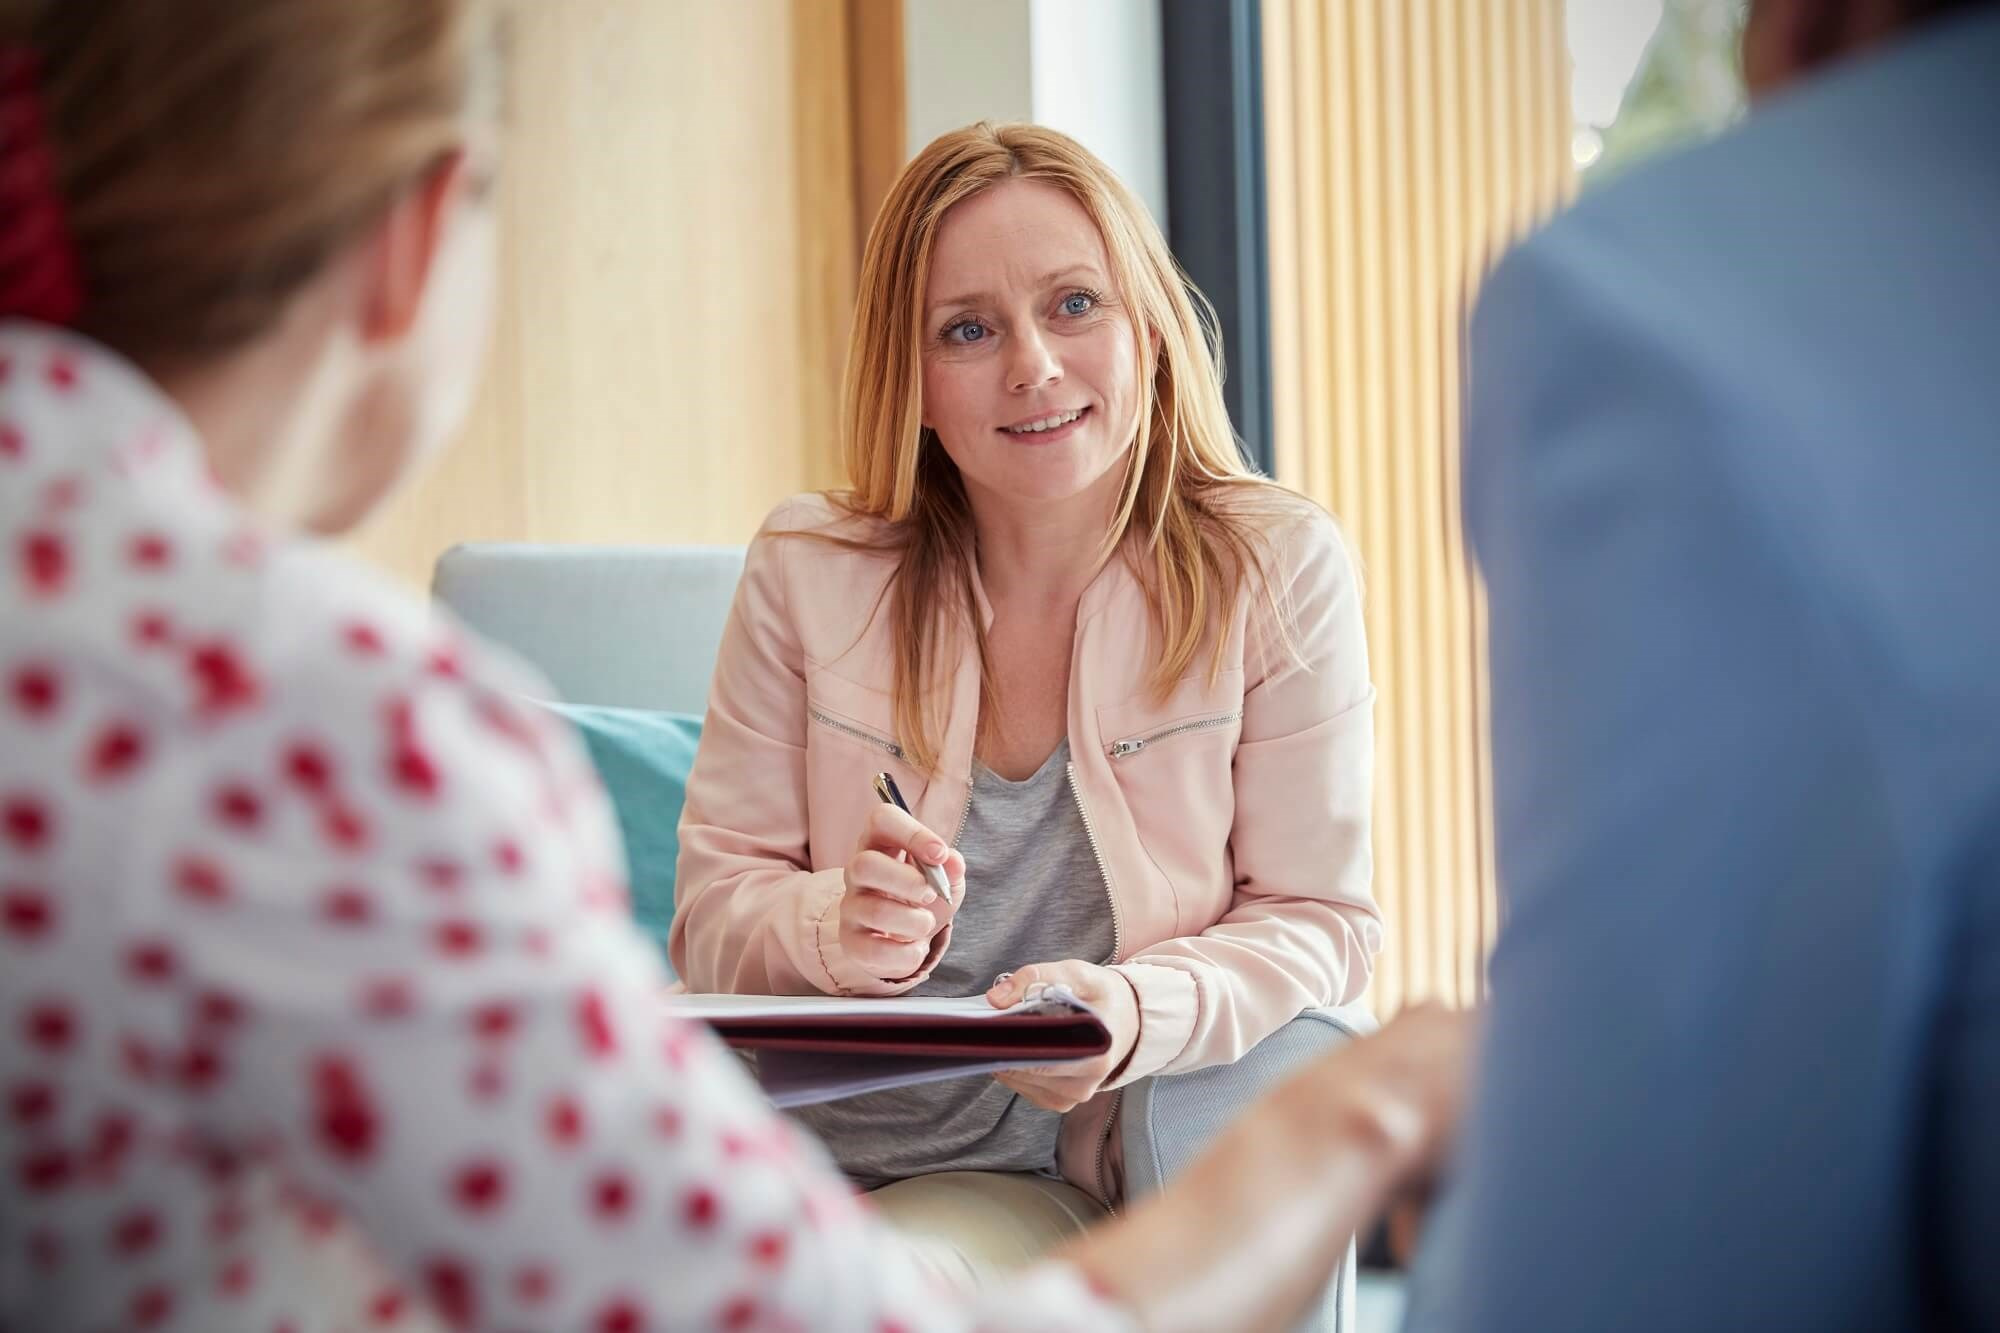 Midwife-Based Education Program May Improve Postmenopausal Sexual Function